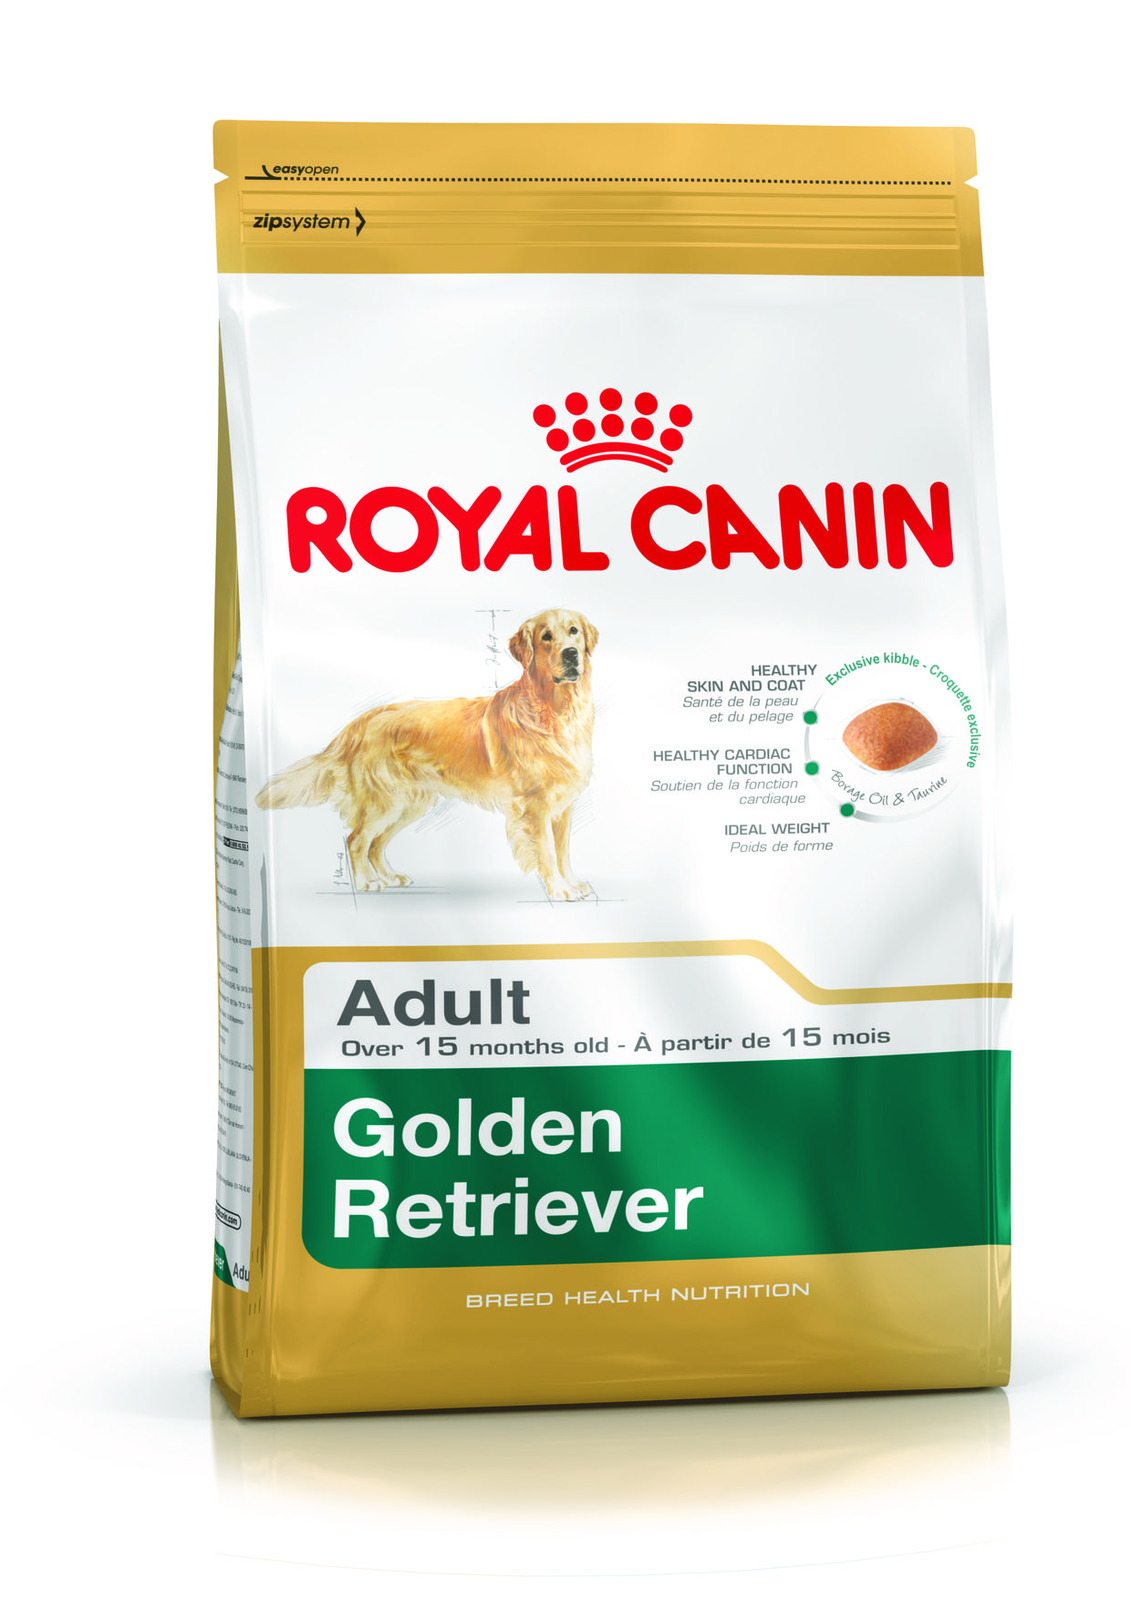 1492179642golden-retriever-adult.jpg